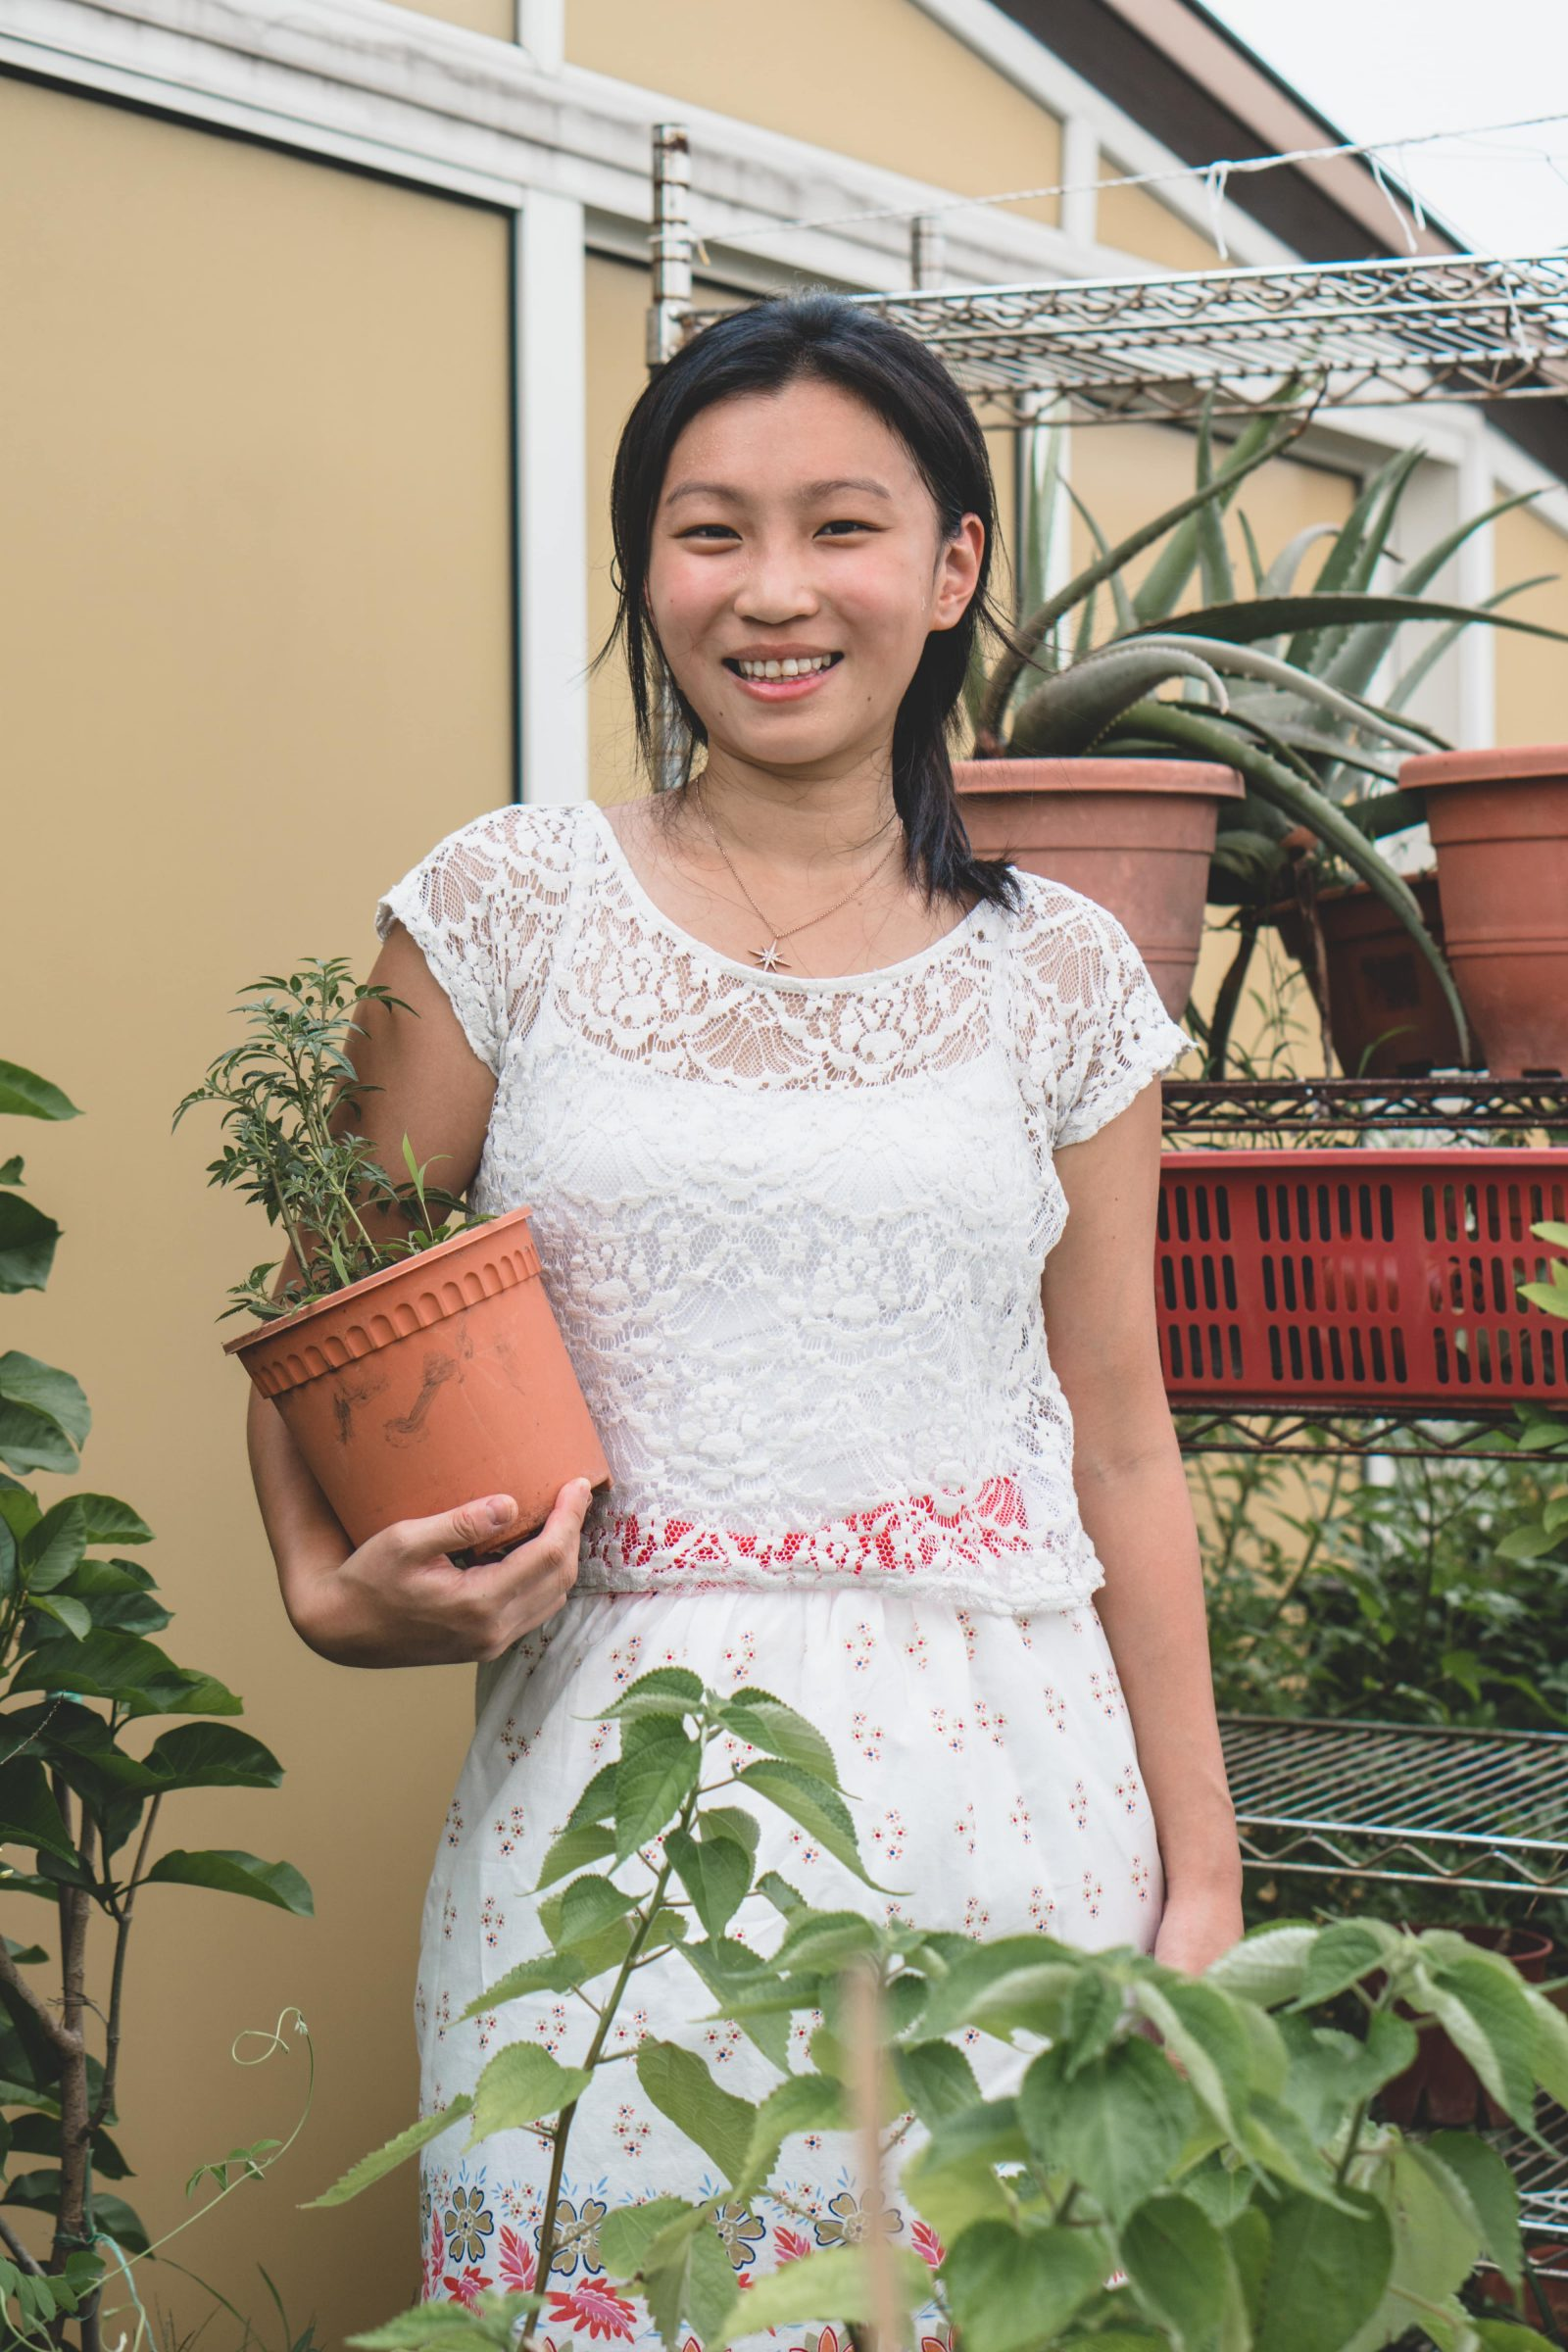 The home gardener behind WWEdibles, Joanna Chuah